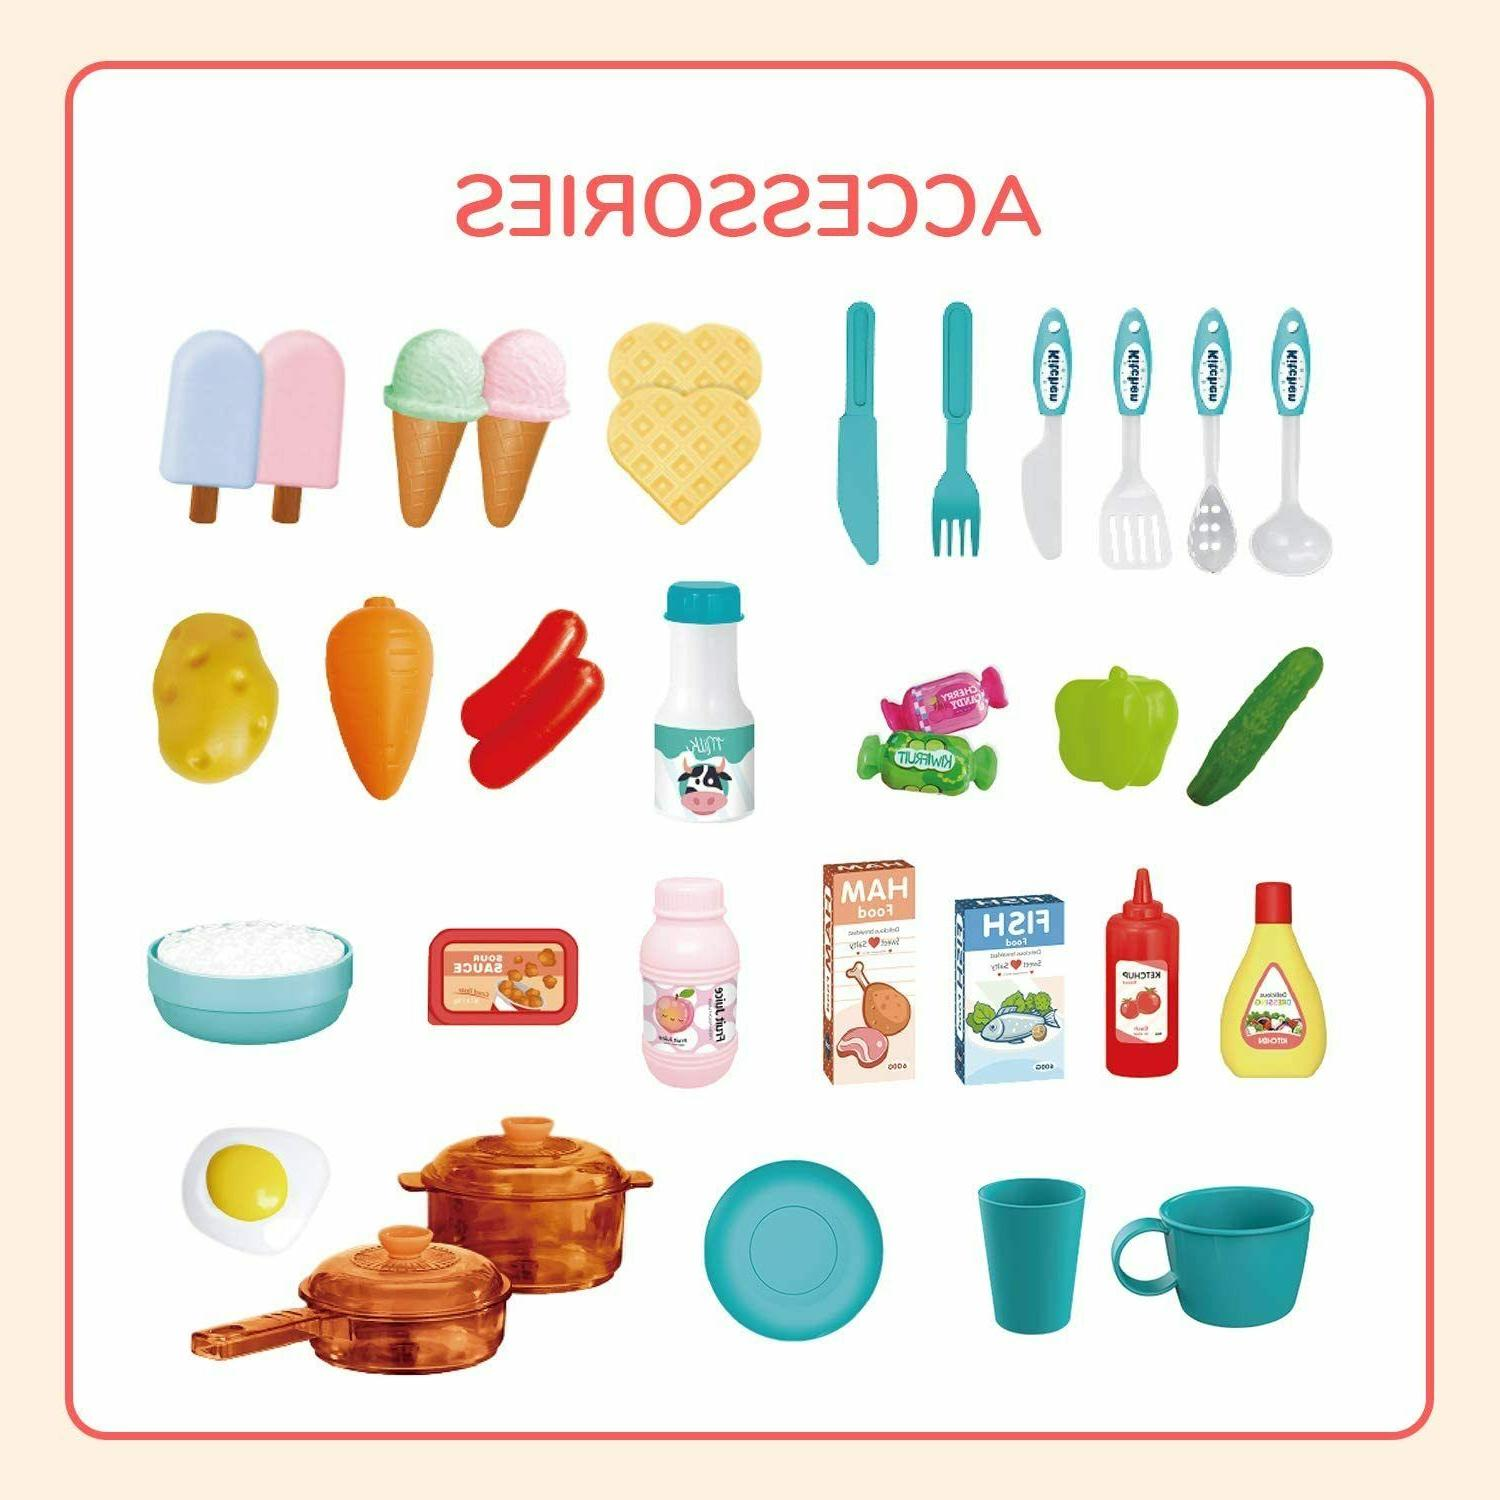 35 Play Set Toy Cooking Toys Gift